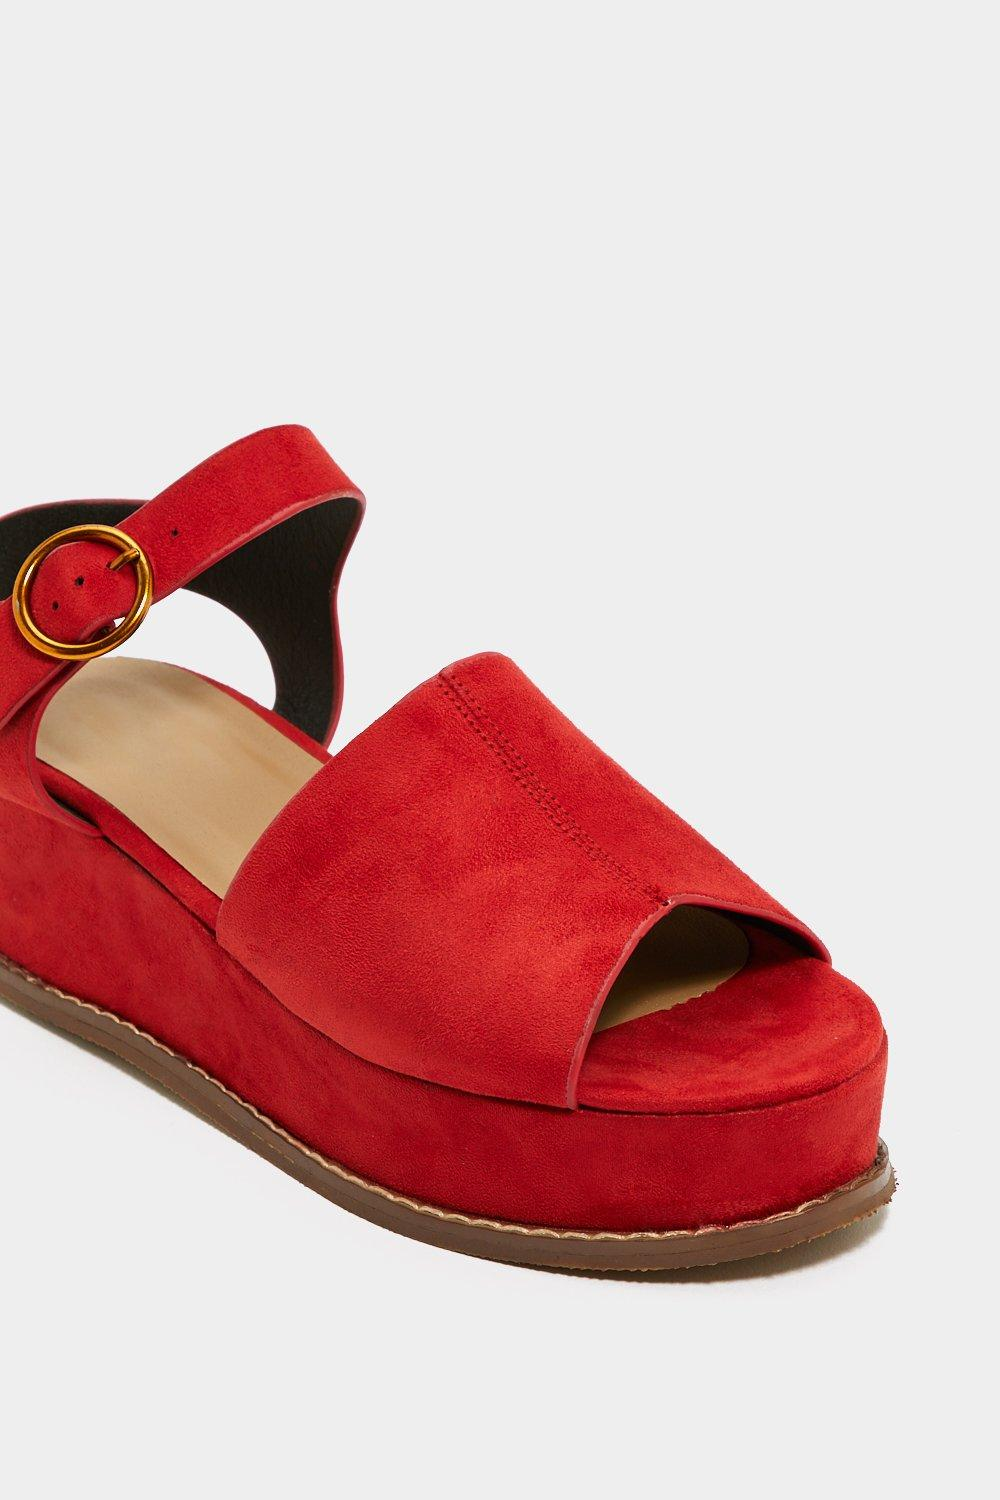 11d2c47f27c1 Womens Red Flat Out Platform Sandal.